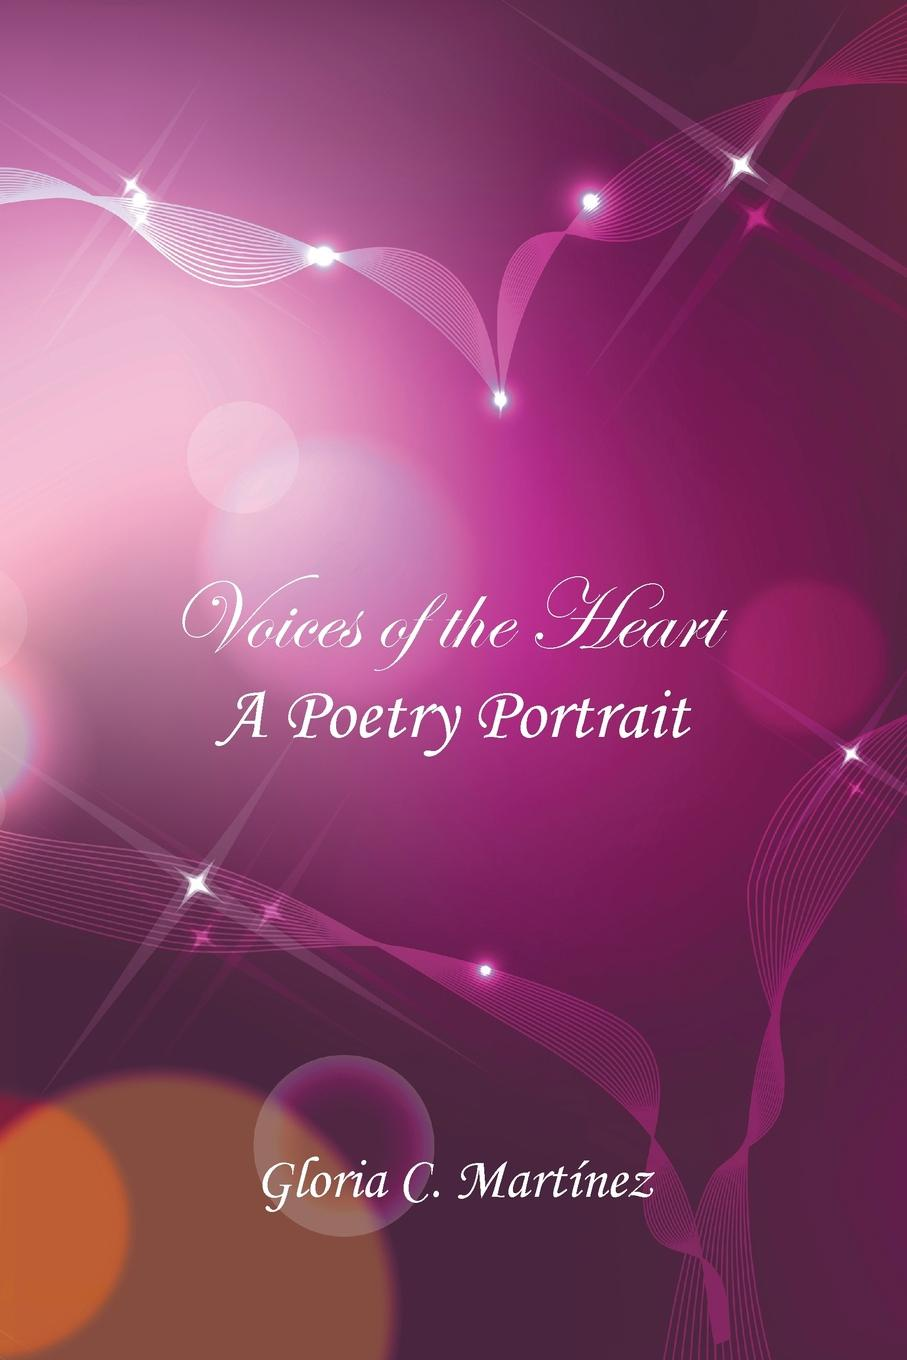 Gloria C. Martinez Voices of the Heart. A Poetry Portrait